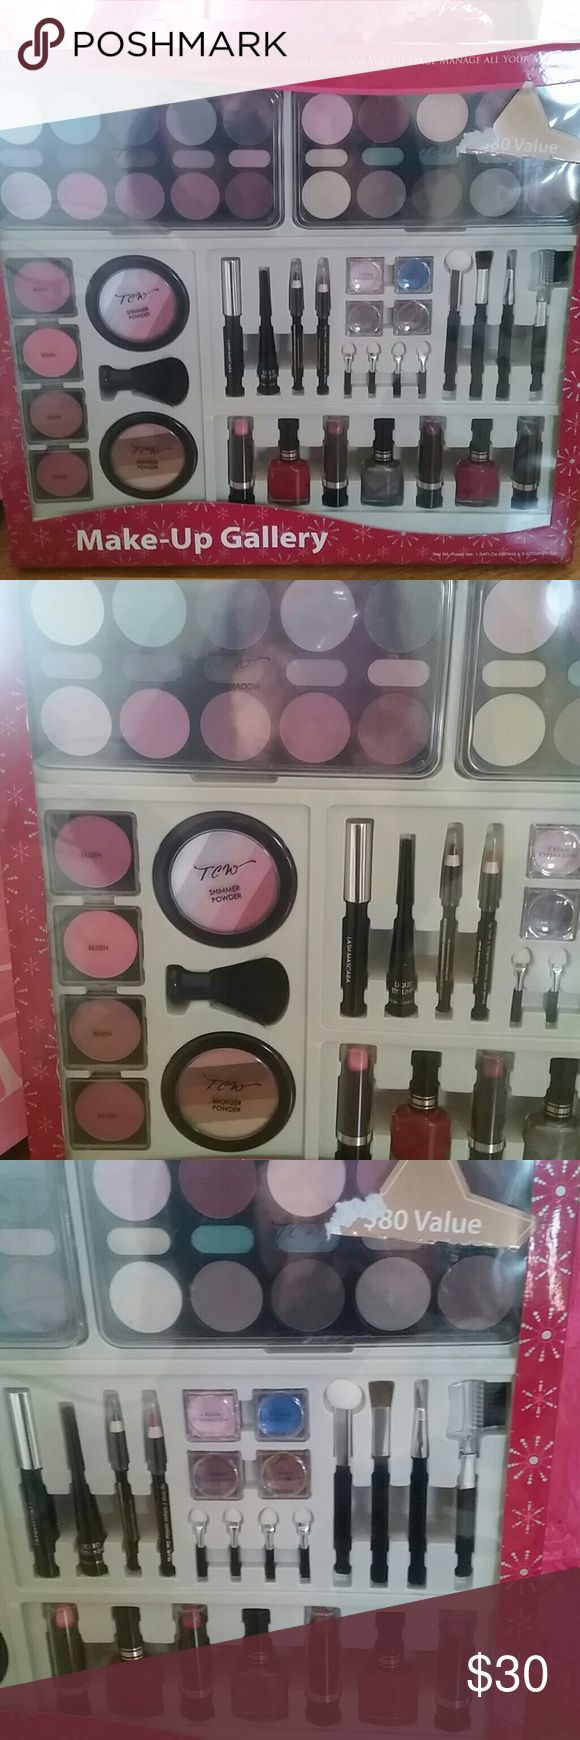 MAKE-UP GALLERY Collection of shadows, blushers, bronzers, highlighters, mascara,liners, polishes and lipsticks & gloss's. Brushes and applicators included! Varied color palettes of blues, greens, browns, mauves, etc.... Great Make-Up Kit for Cheer, theater, etc.... As well as everyday use! Brand new. Never Used, Never Opened. 60 piece set.... Color Workshop Makeup